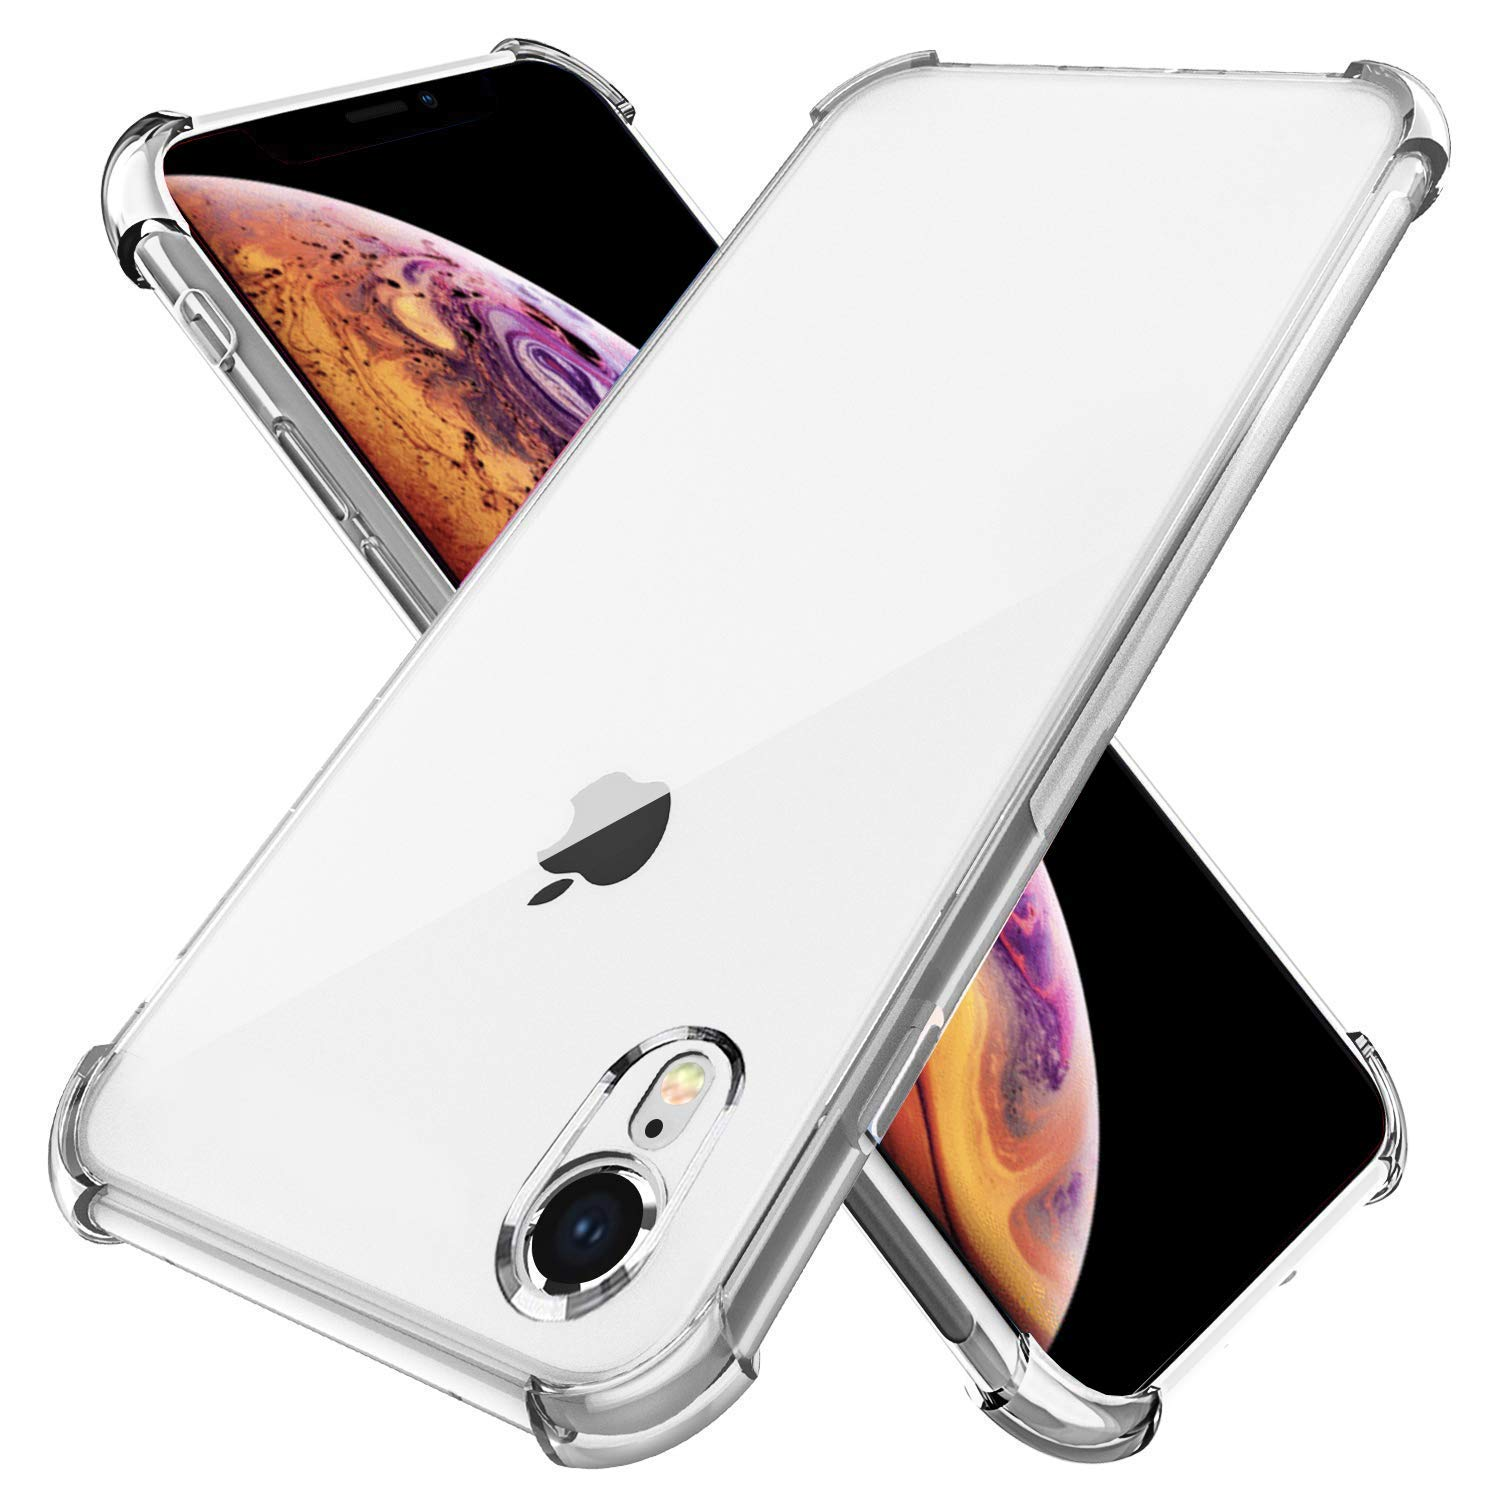 ***NEW Transparent Silicone Shockproof TPU Bumper Case Cover For iPhone XR NEW** Cases, Covers & Skins